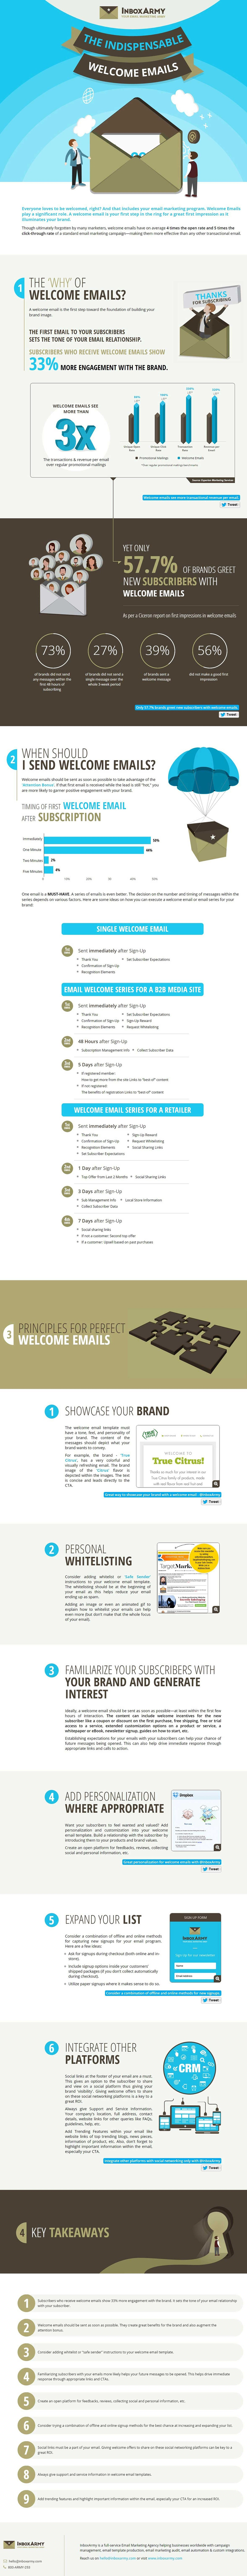 The Indispensible Welcome Email [Infographic]